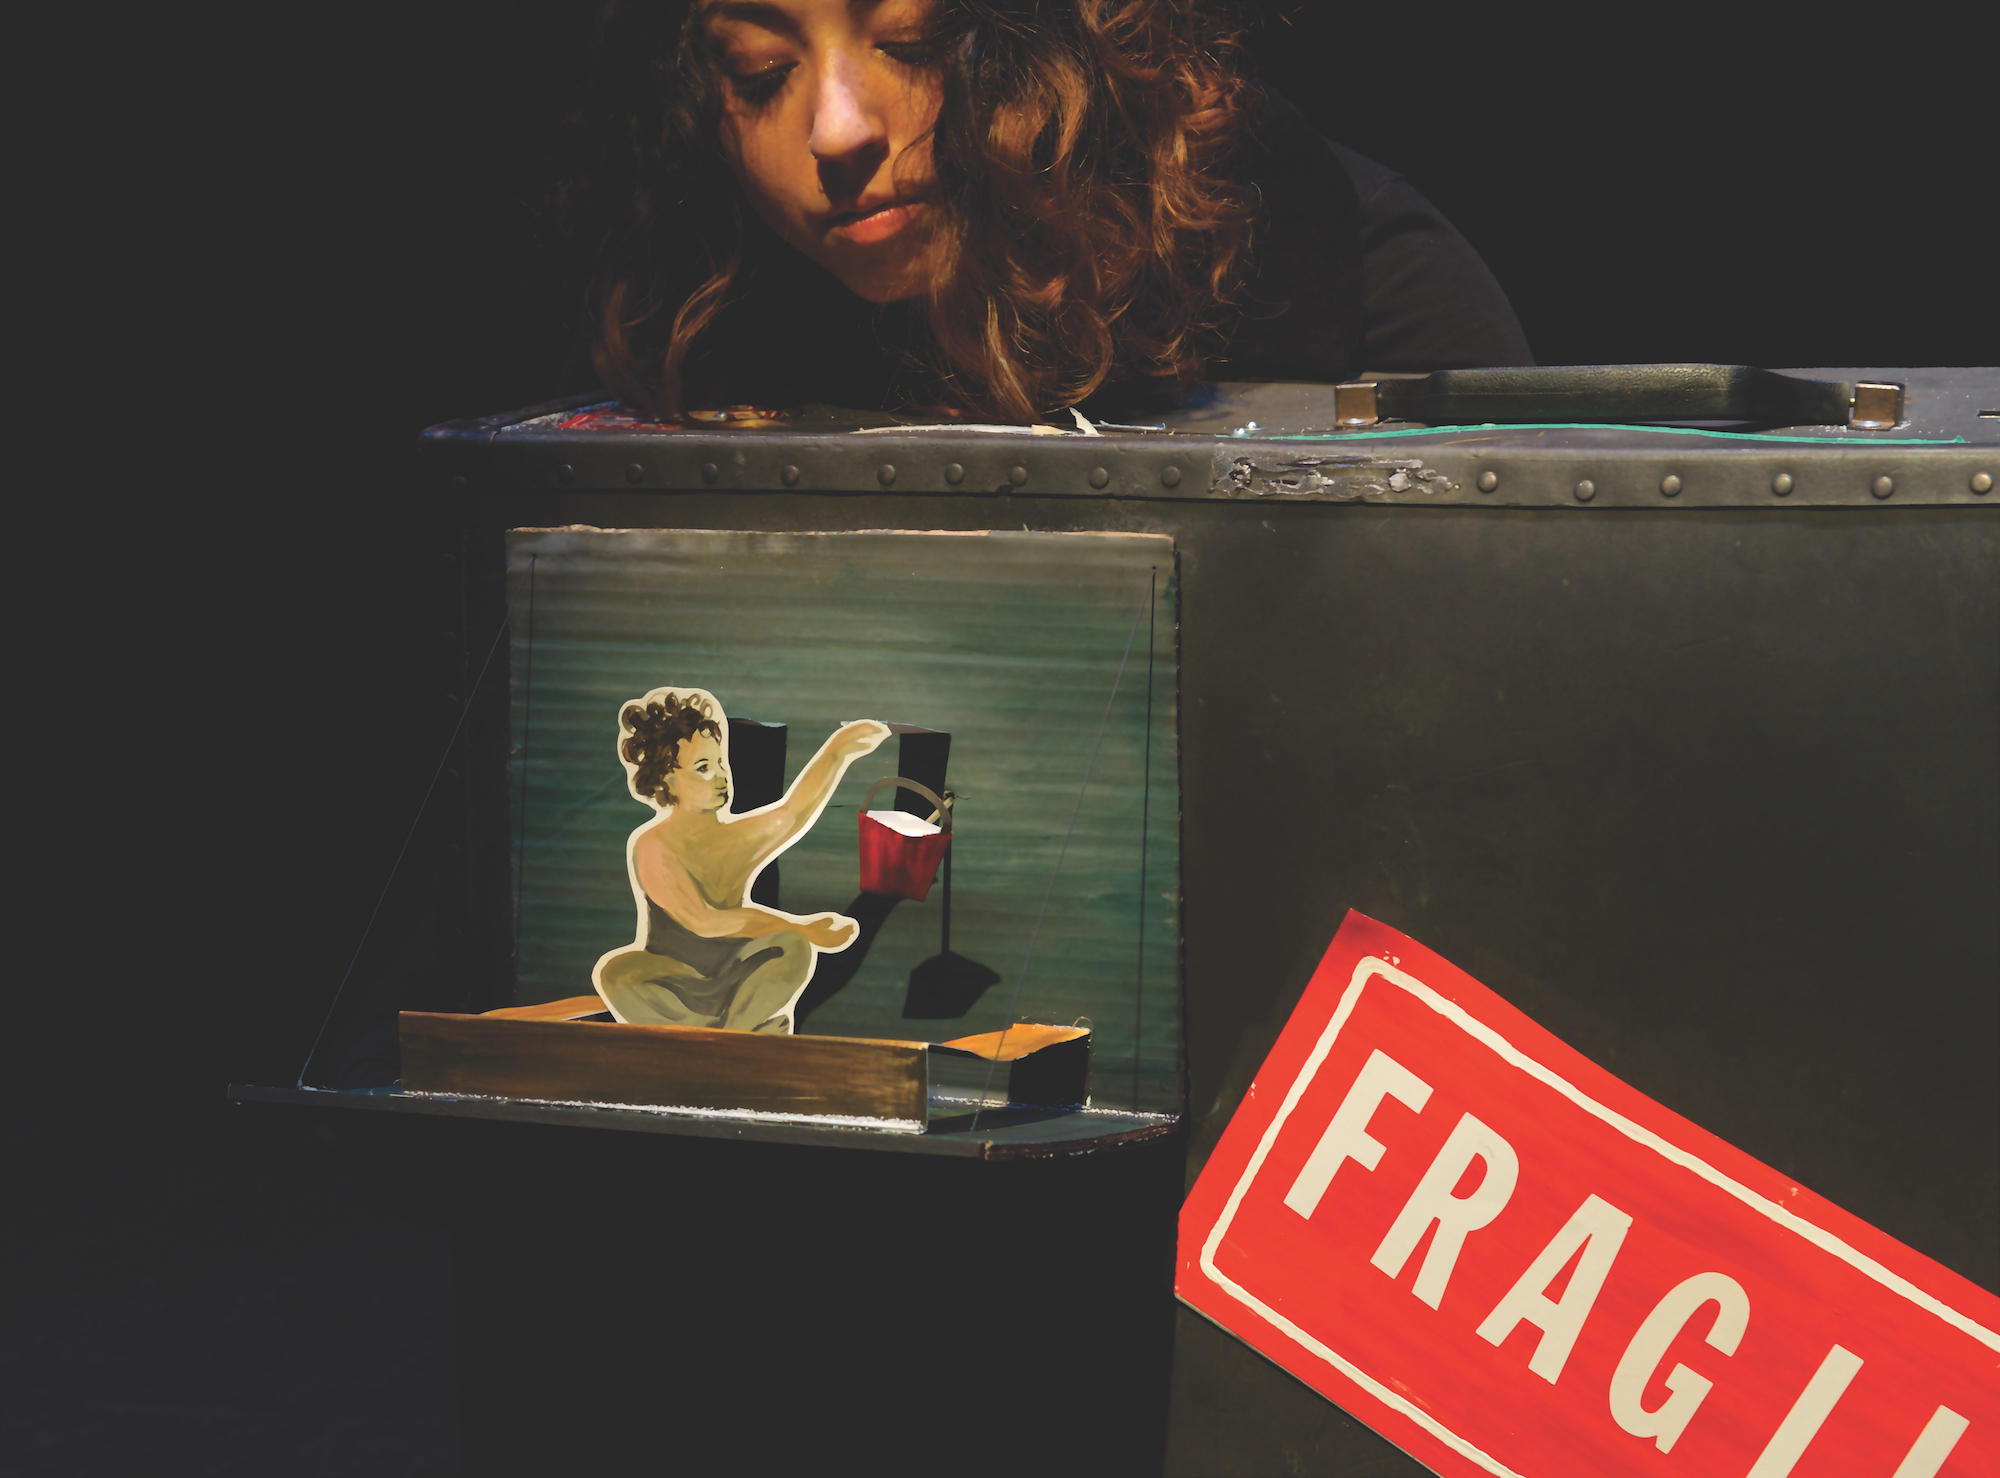 """A puppeteer is behind a large suitcase with a handle. In front is a paper cut-out of a child and a red bucket. The front of the suitcase has a big red sticker that reads """"FRAGILE"""" in white letters, with the last few letters cut off."""